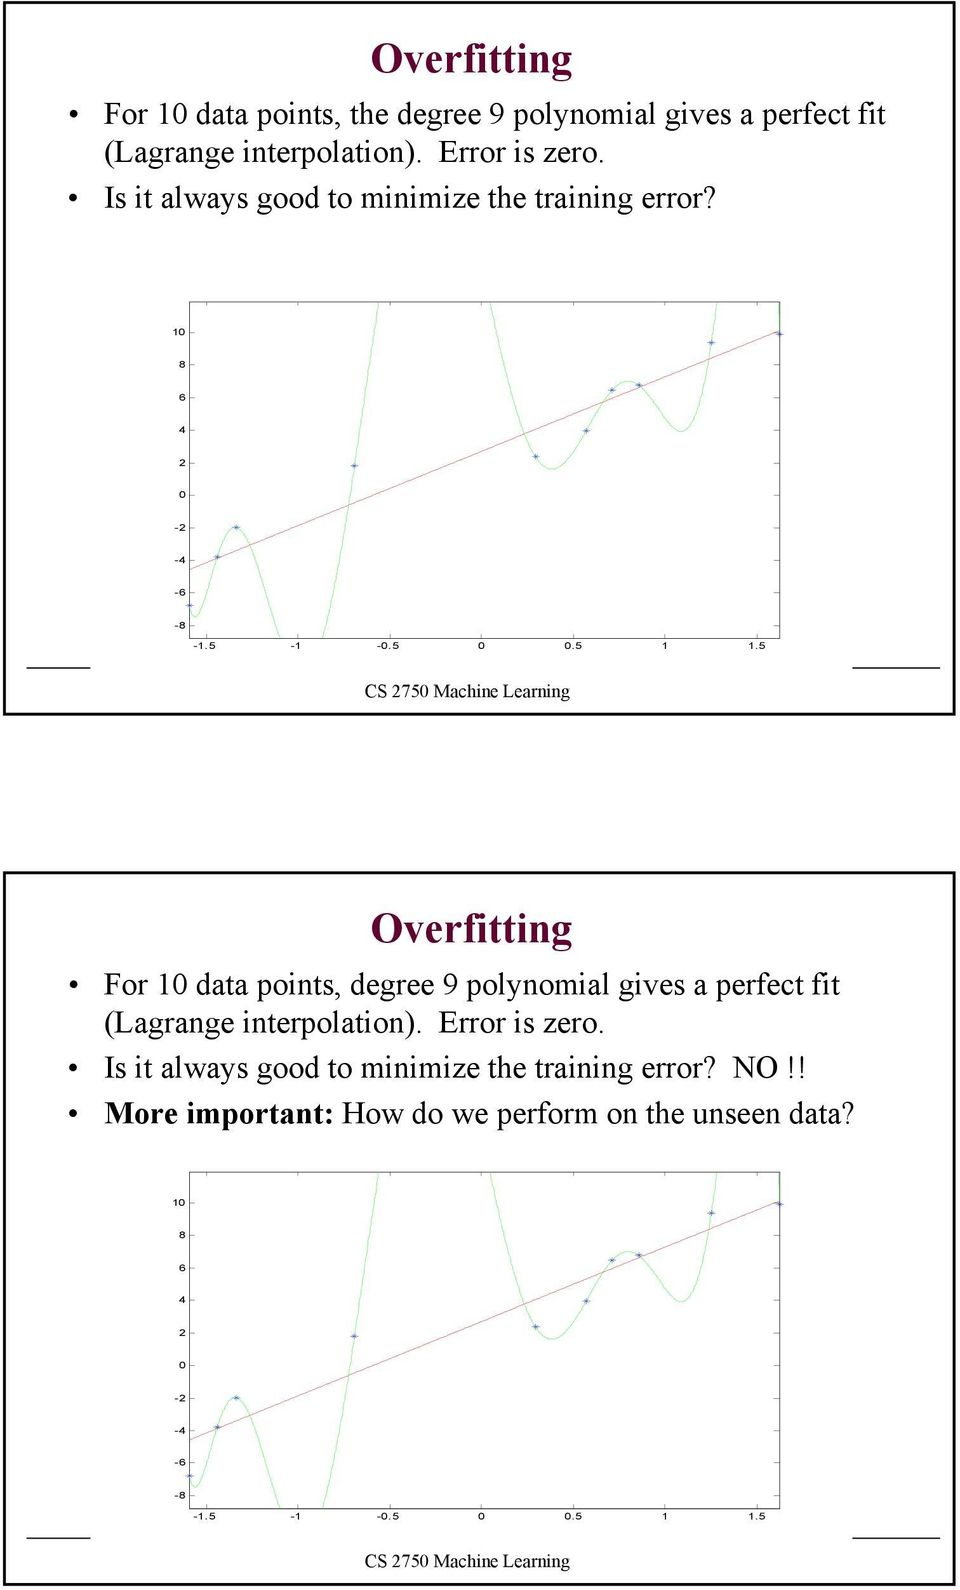 - -.5.5.5 Overfitting For data points, degree 9 polynomial gives a perfect fit (Lagrange interpolation).